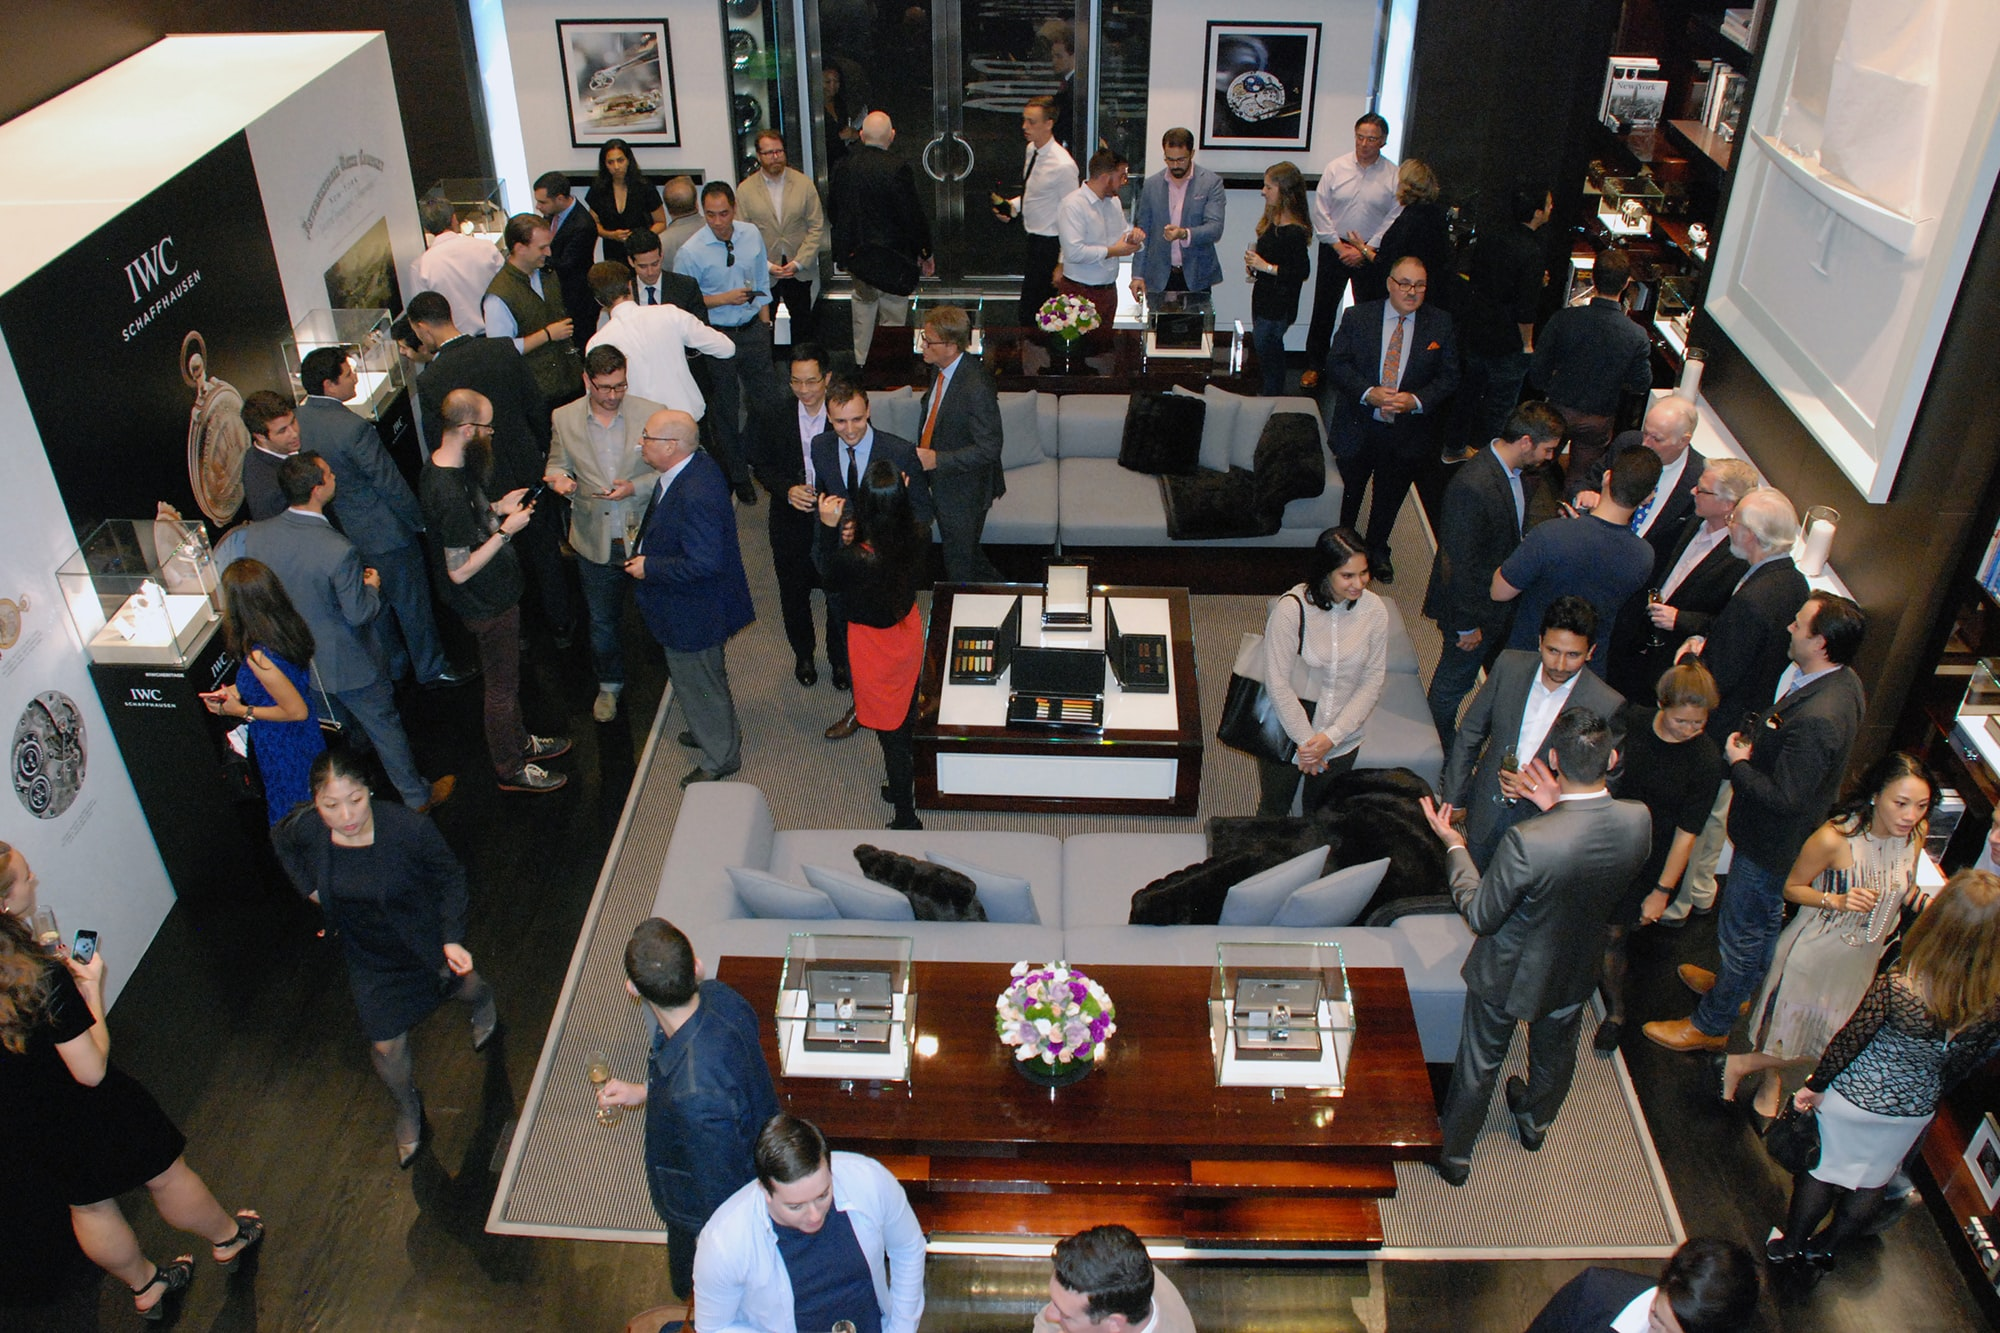 Photo Report: HODINKEE And IWC Celebrate The Portugieser Hand-Wound Tourbillion Edition 'D.H. Craig USA' In New York Photo Report: HODINKEE And IWC Celebrate The Portugieser Hand-Wound Tourbillion Edition 'D.H. Craig USA' In New York 0117 copy